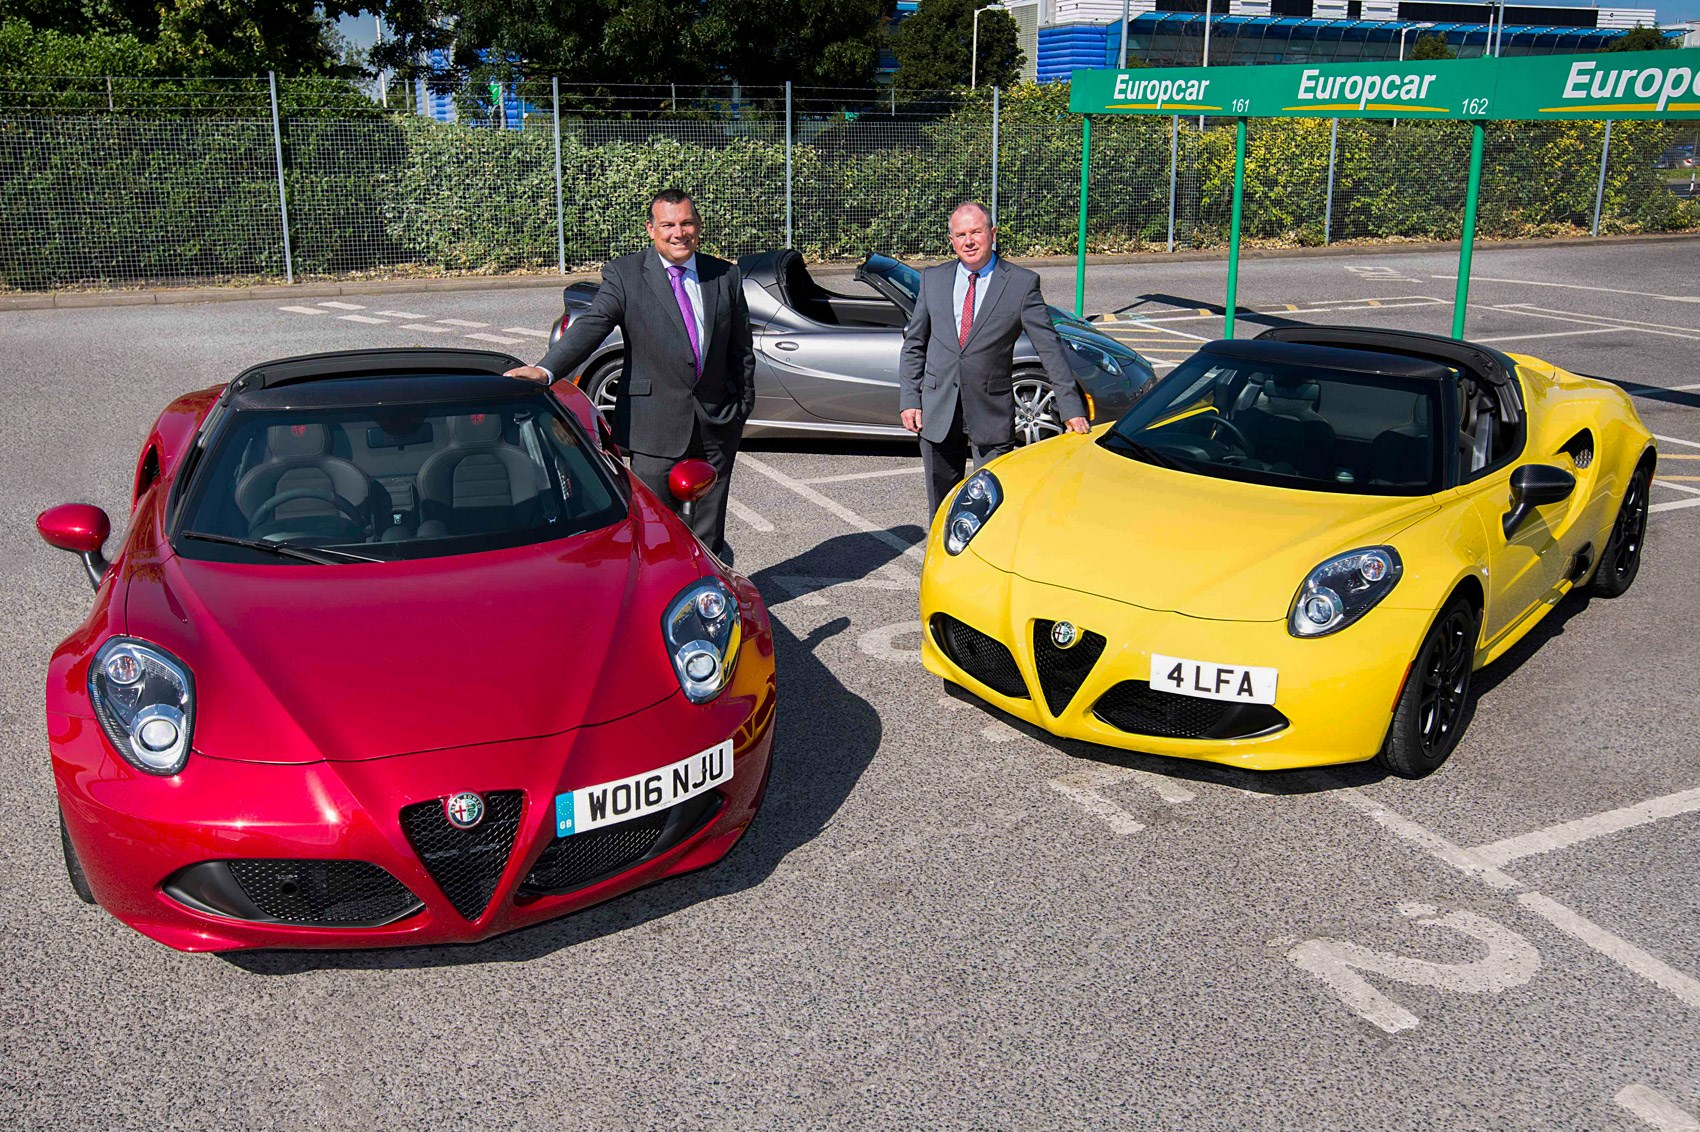 An Italian fling for £248: Alfa Romeo 4C Spider added to Europcar ...